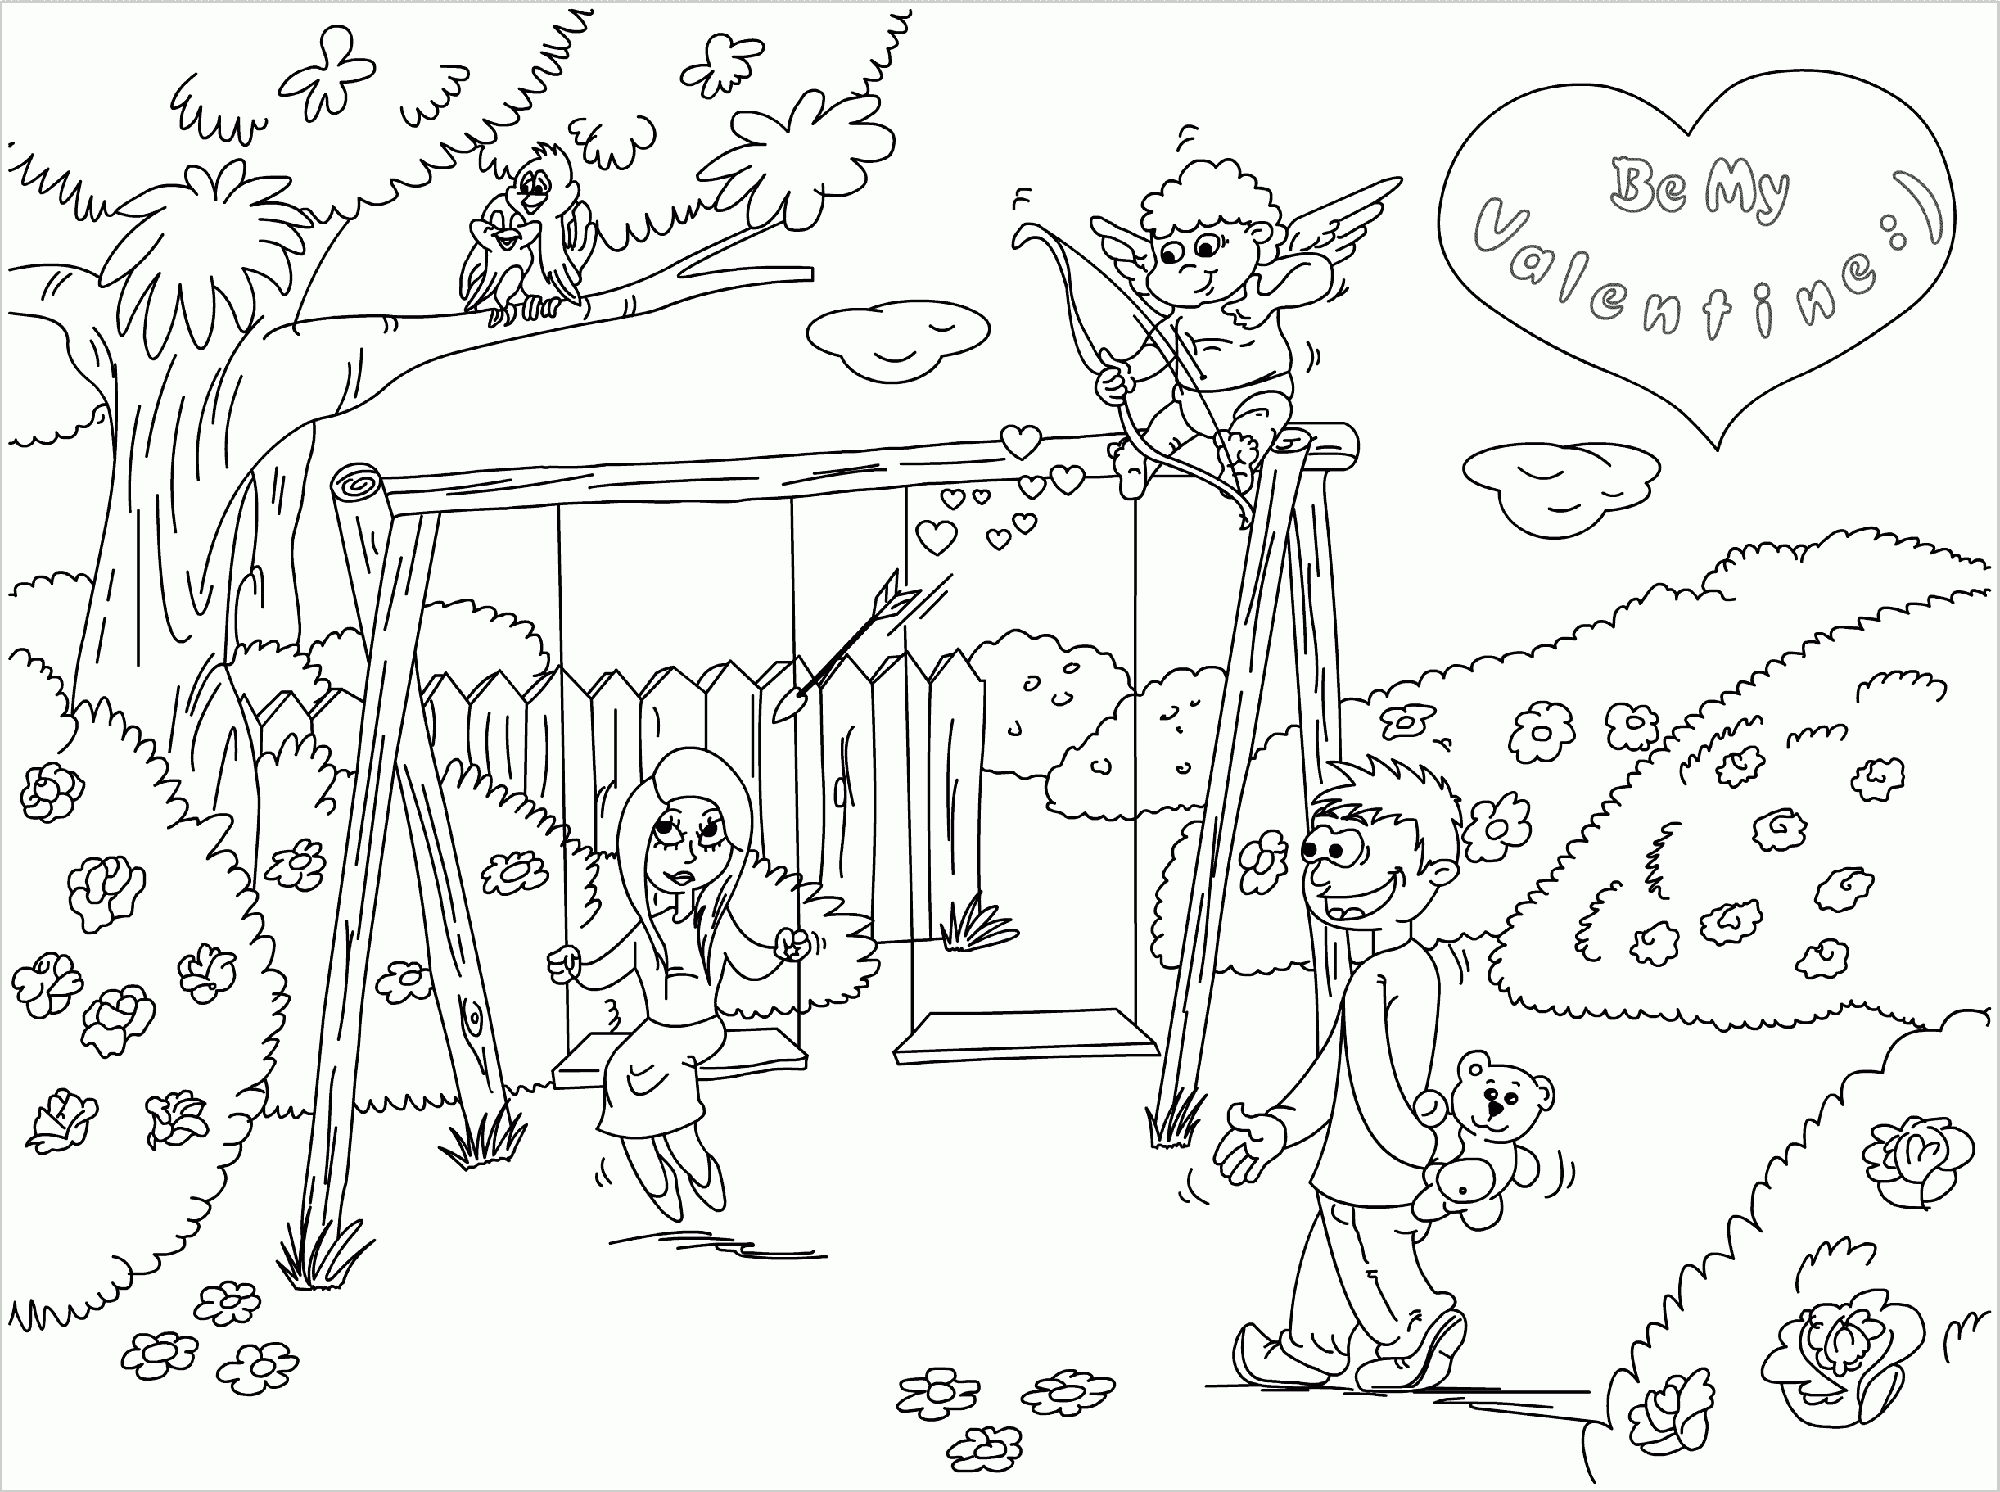 Drawn scenery park playground Pages Art Of Coloring Scenery